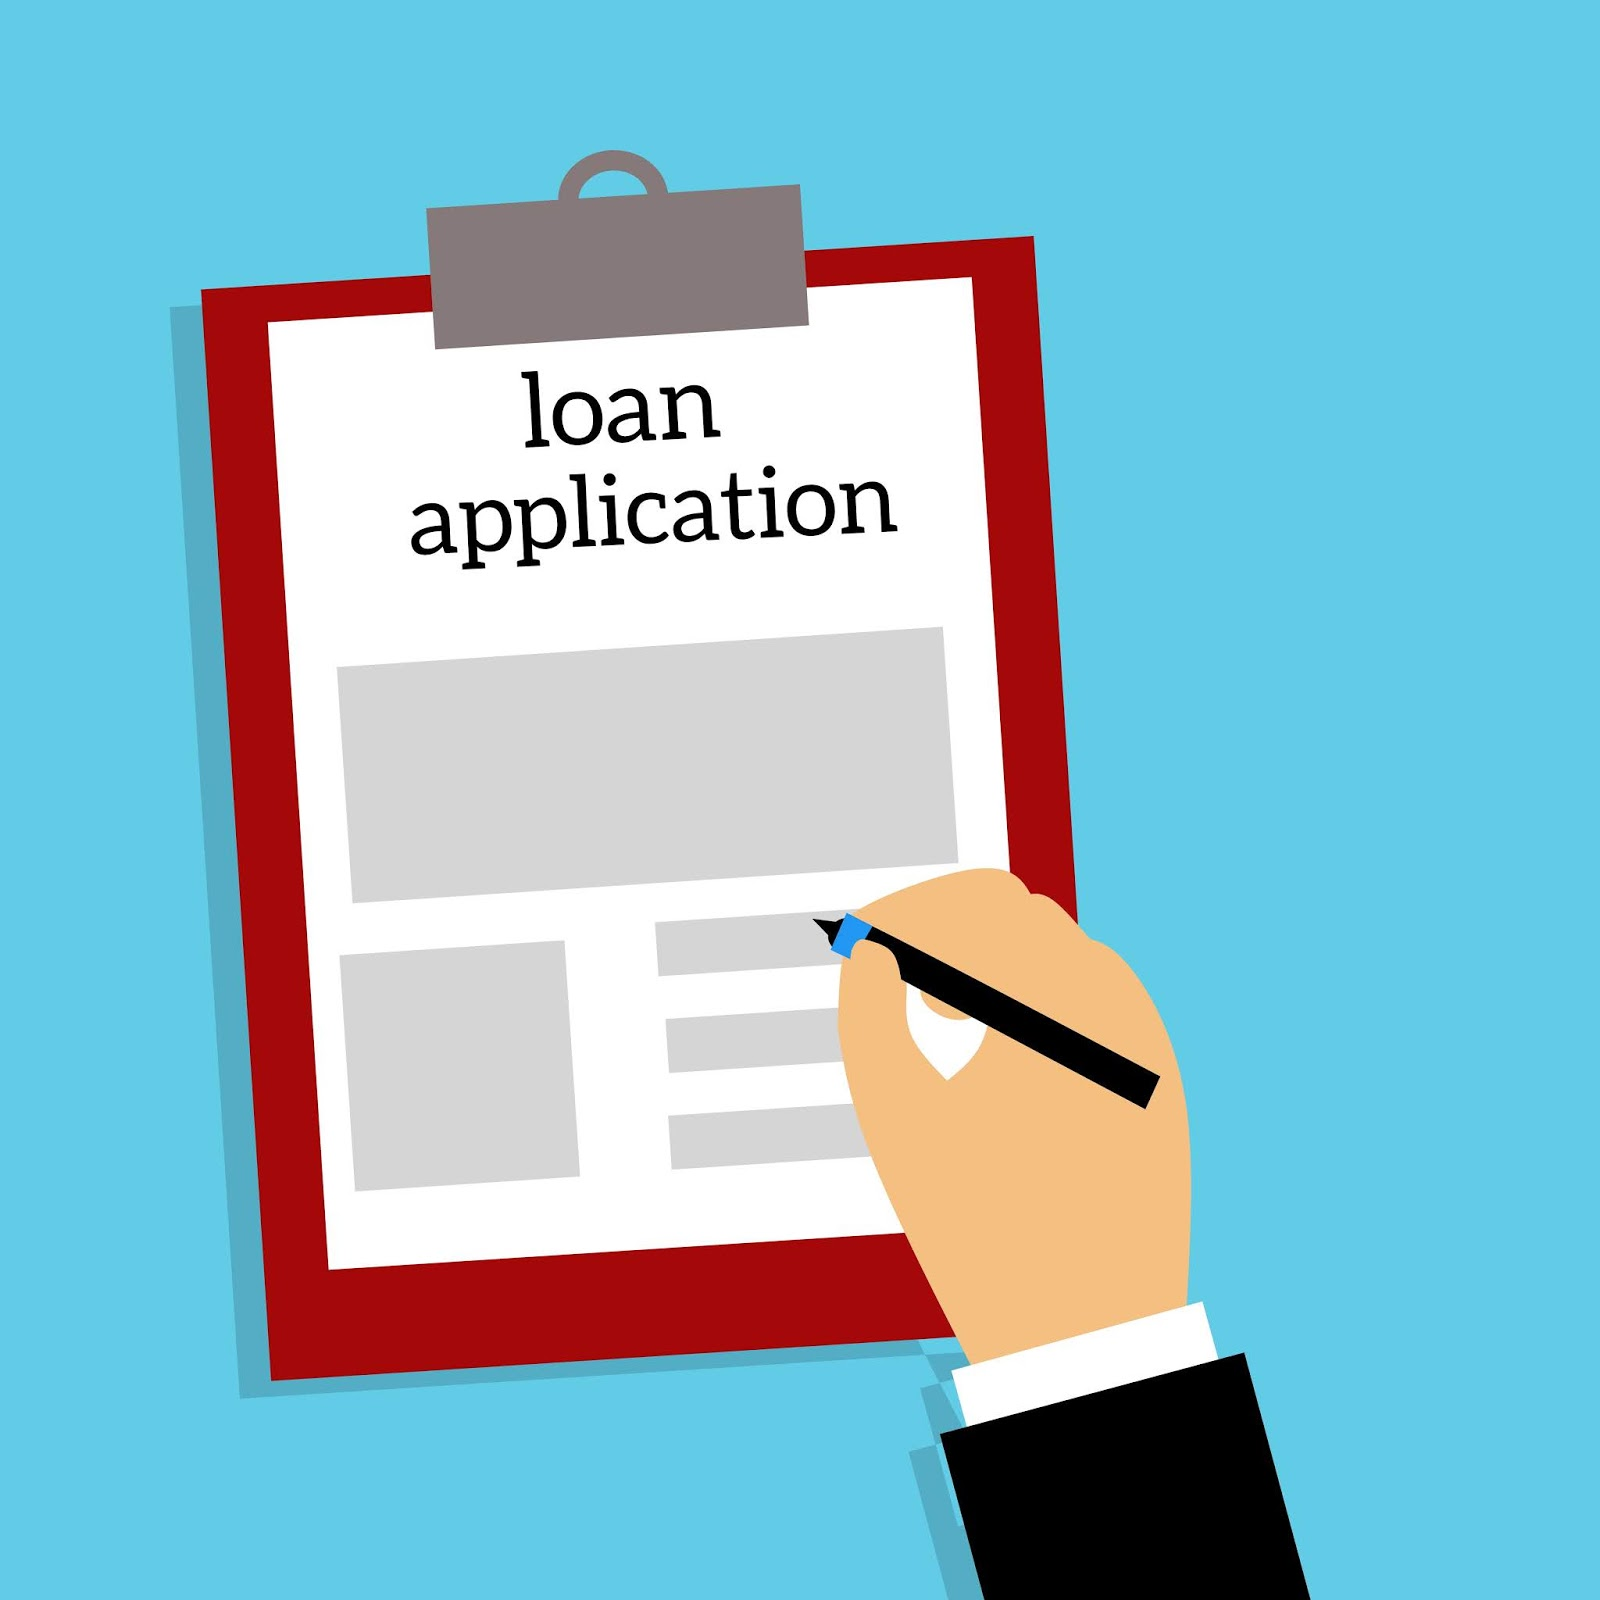 loan, agreement, signature, business, finance, businessman, contract, copy, corporate, deal, document, employee, financial, hand, lawyer, legal, paper, paperwork, pen, sign, text, bank, banking, application, form